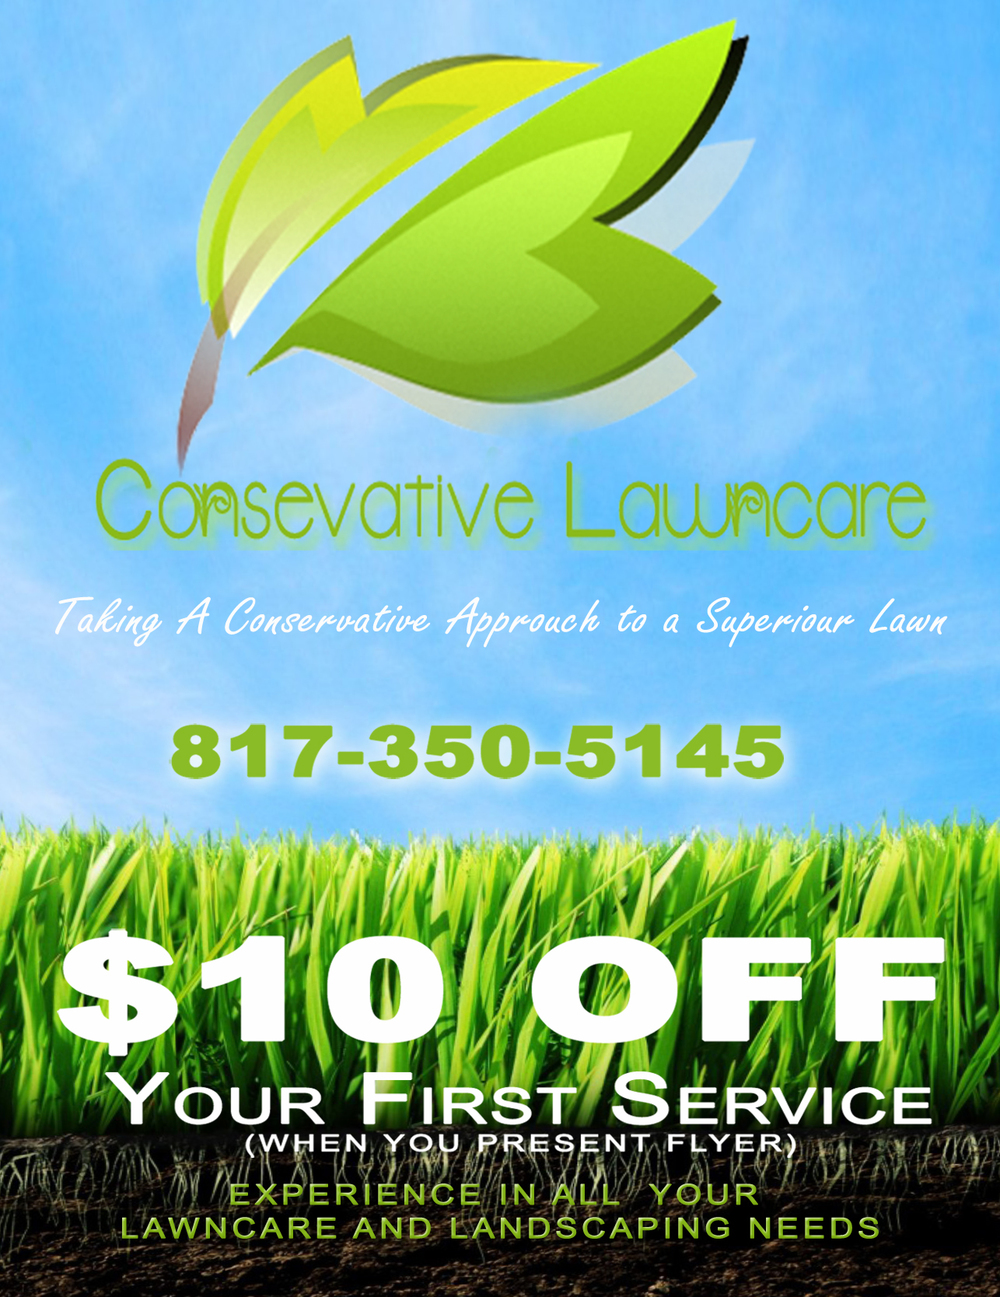 Consevative Lawncare FLYERS 2.jpg